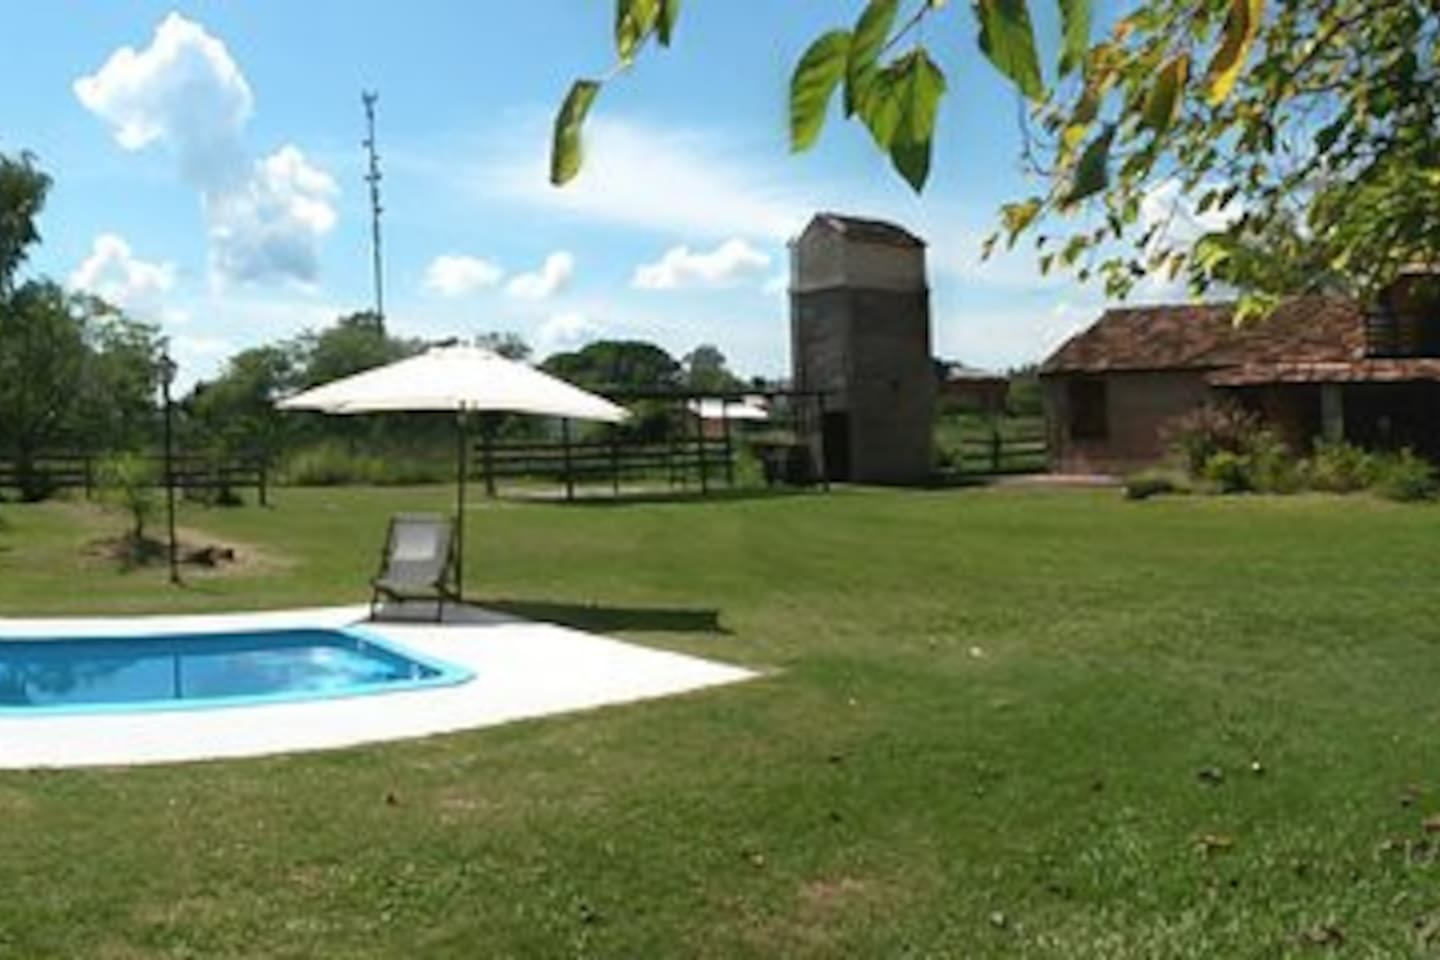 patio y piscina.